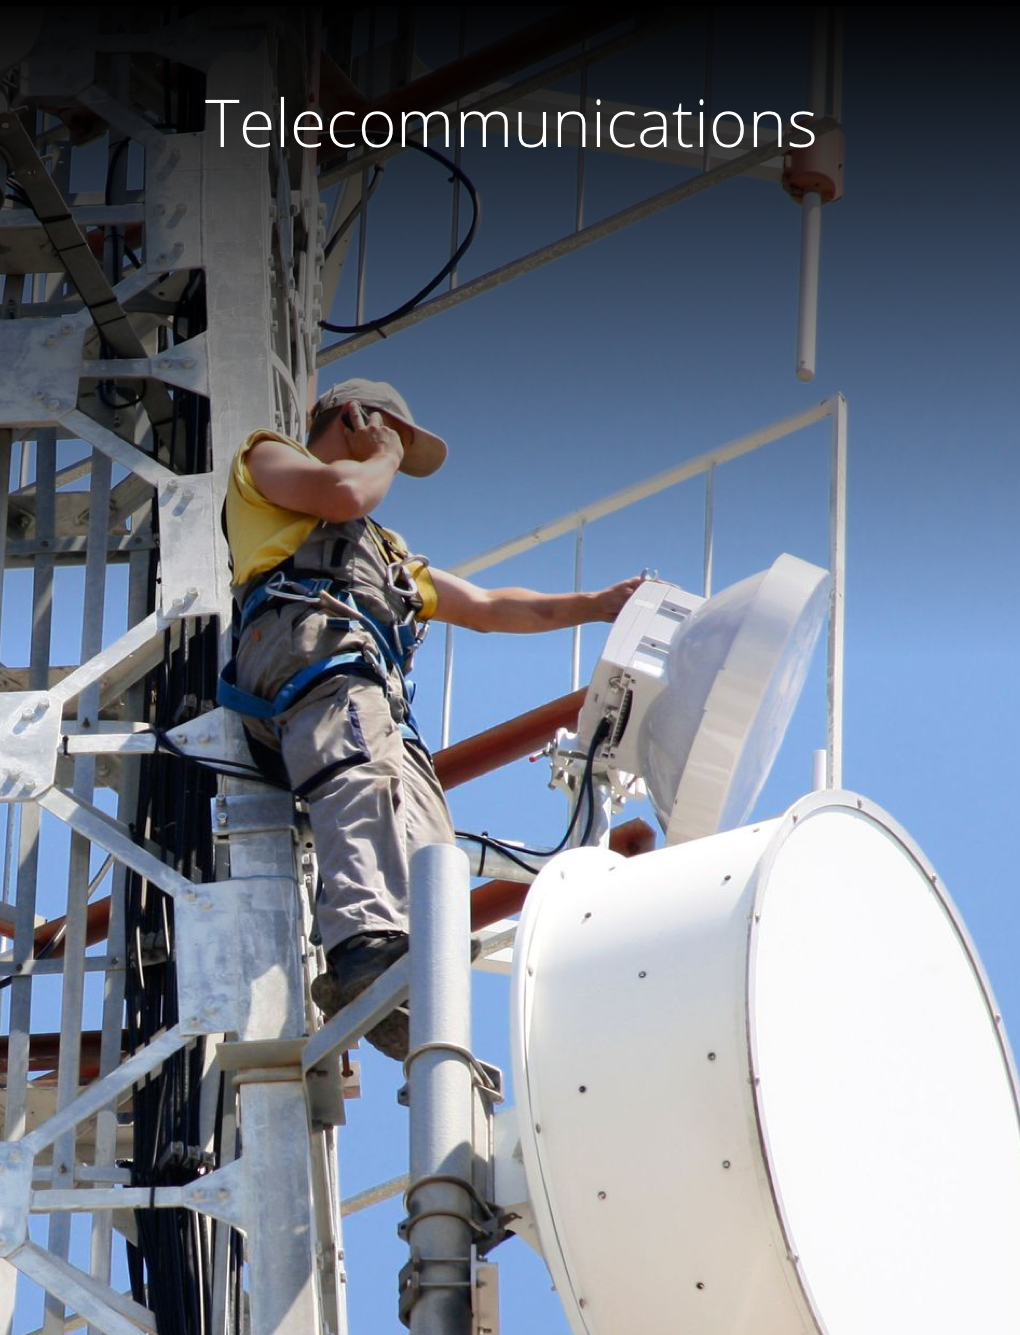 Top telcos are centralizing knowledge resources via handsfree Remote Assistance and Work Instructions to enable more informed maintenance, repair and operations (MRO) and decrease downtime of critical infrastructure.